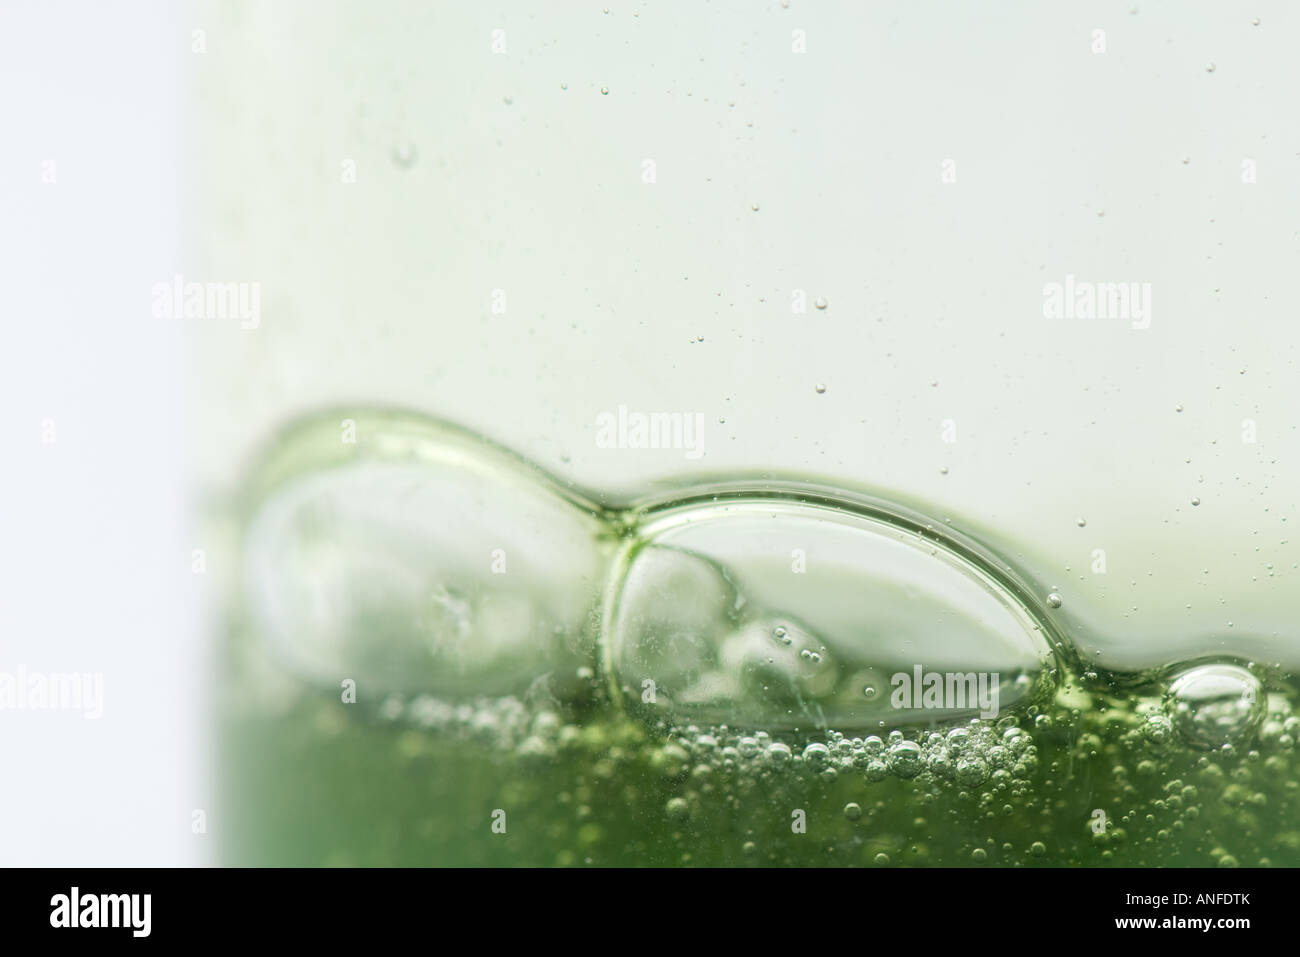 Bubbles in green gel, extreme close-up - Stock Image